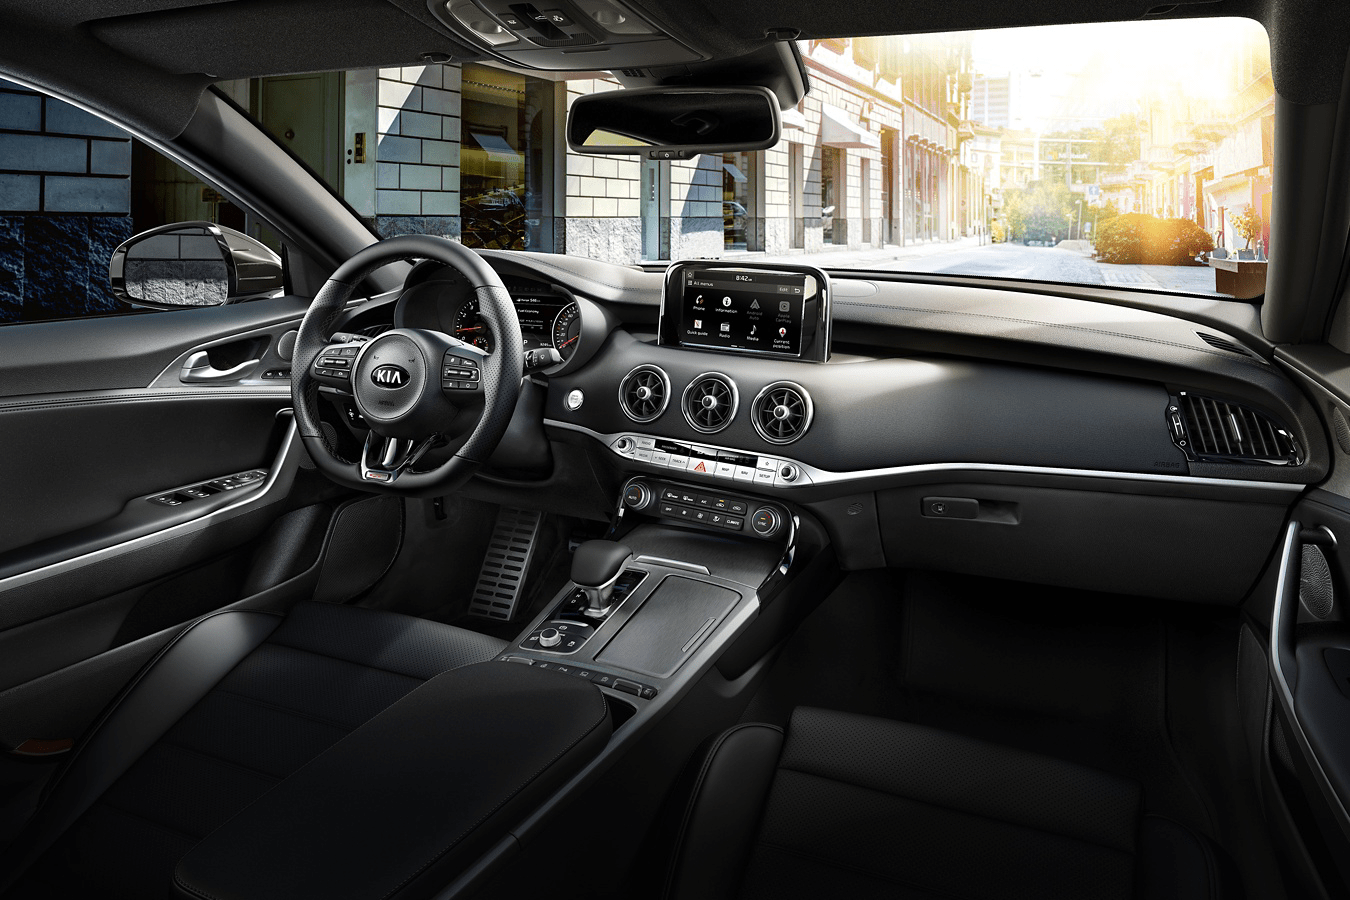 2019 Kia Stinger interior in black leather